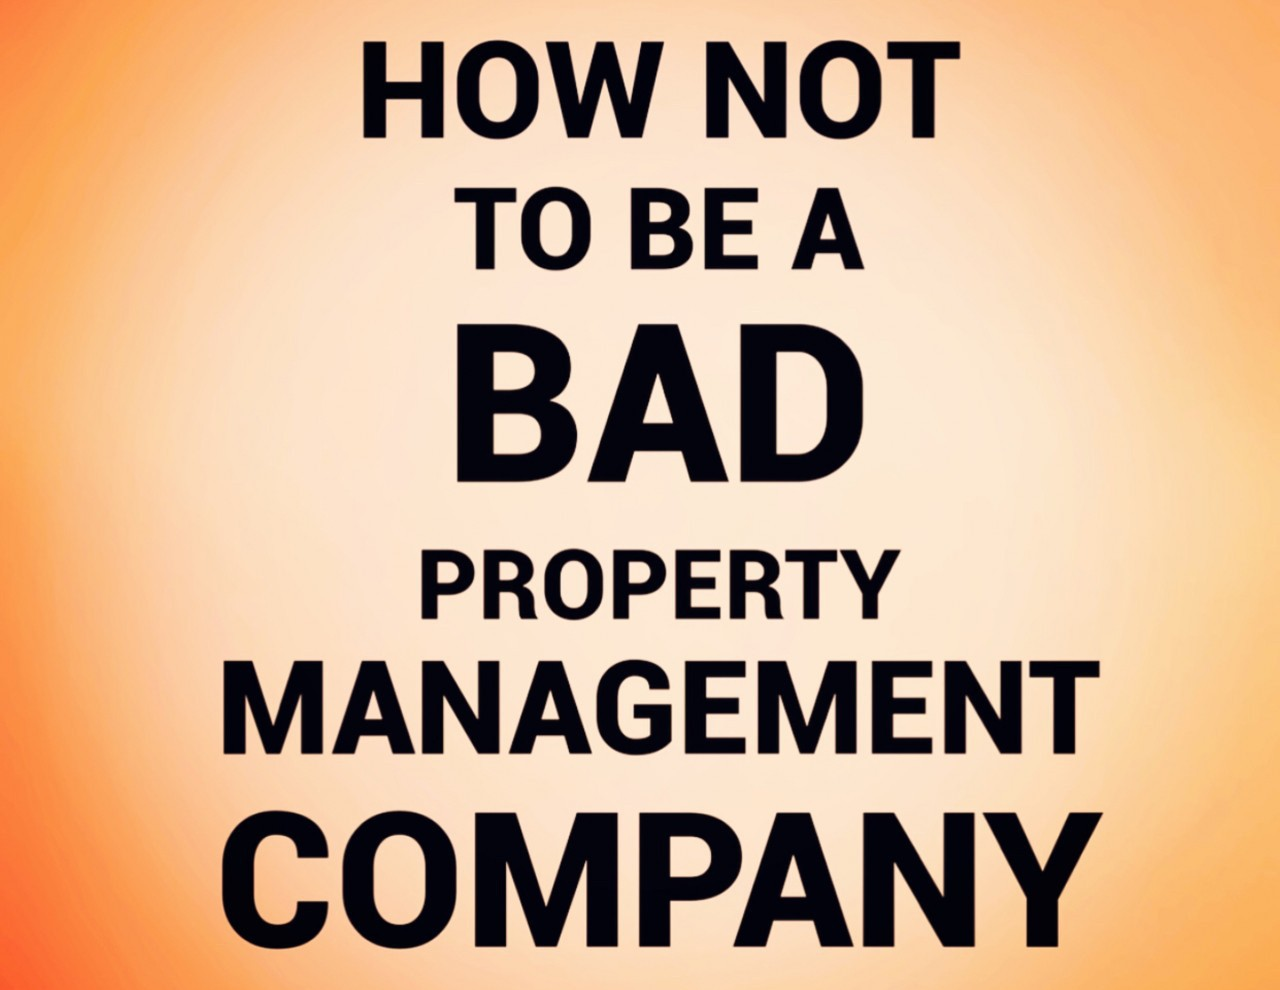 How Not to Be a Bad Property Management Company